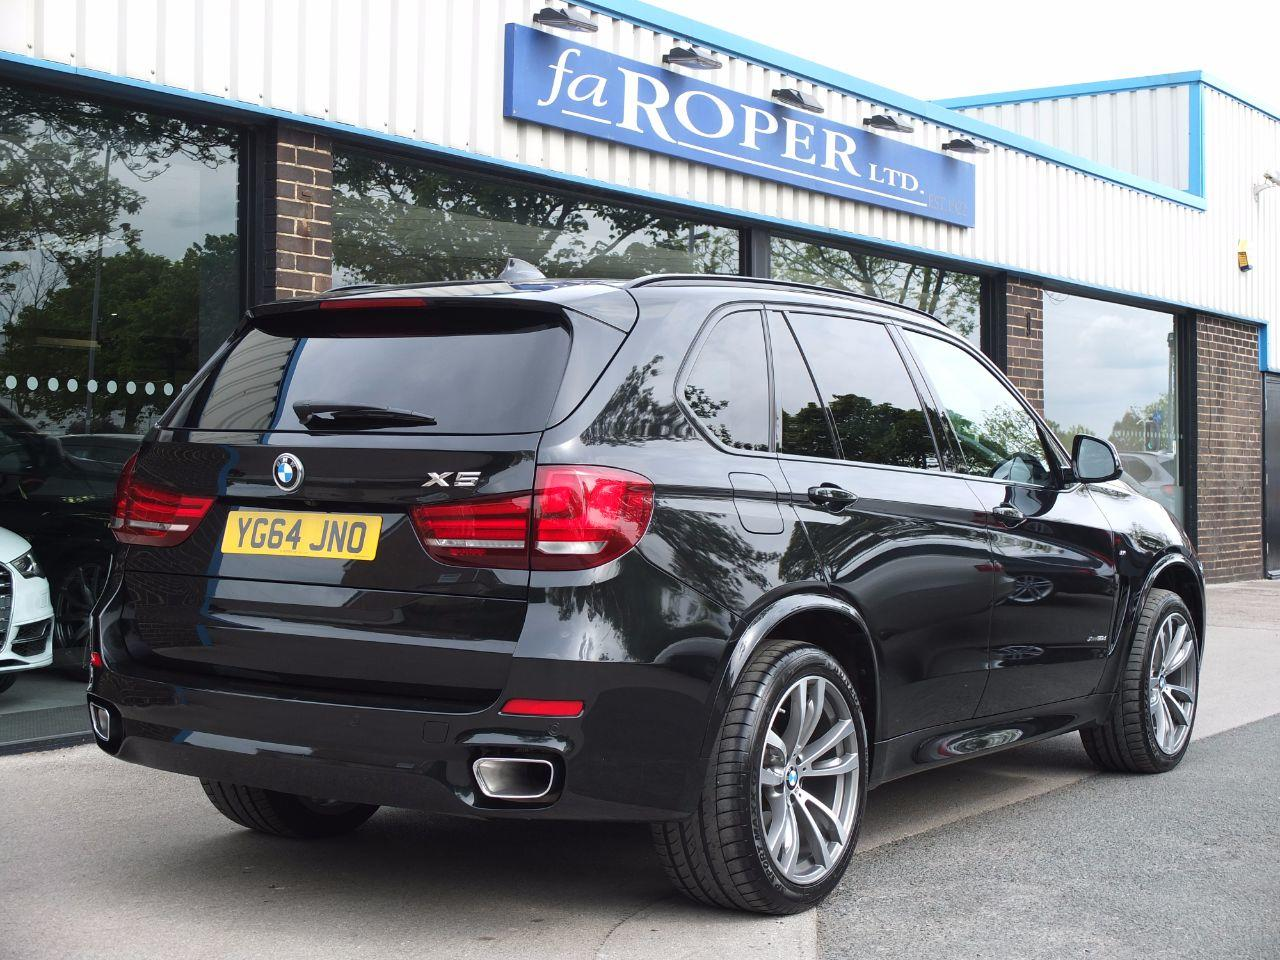 BMW X5 3.0 xDrive30d M Sport Auto 7 Seat, Pan Roof +++Spec Estate Diesel Black Sapphire Metallic